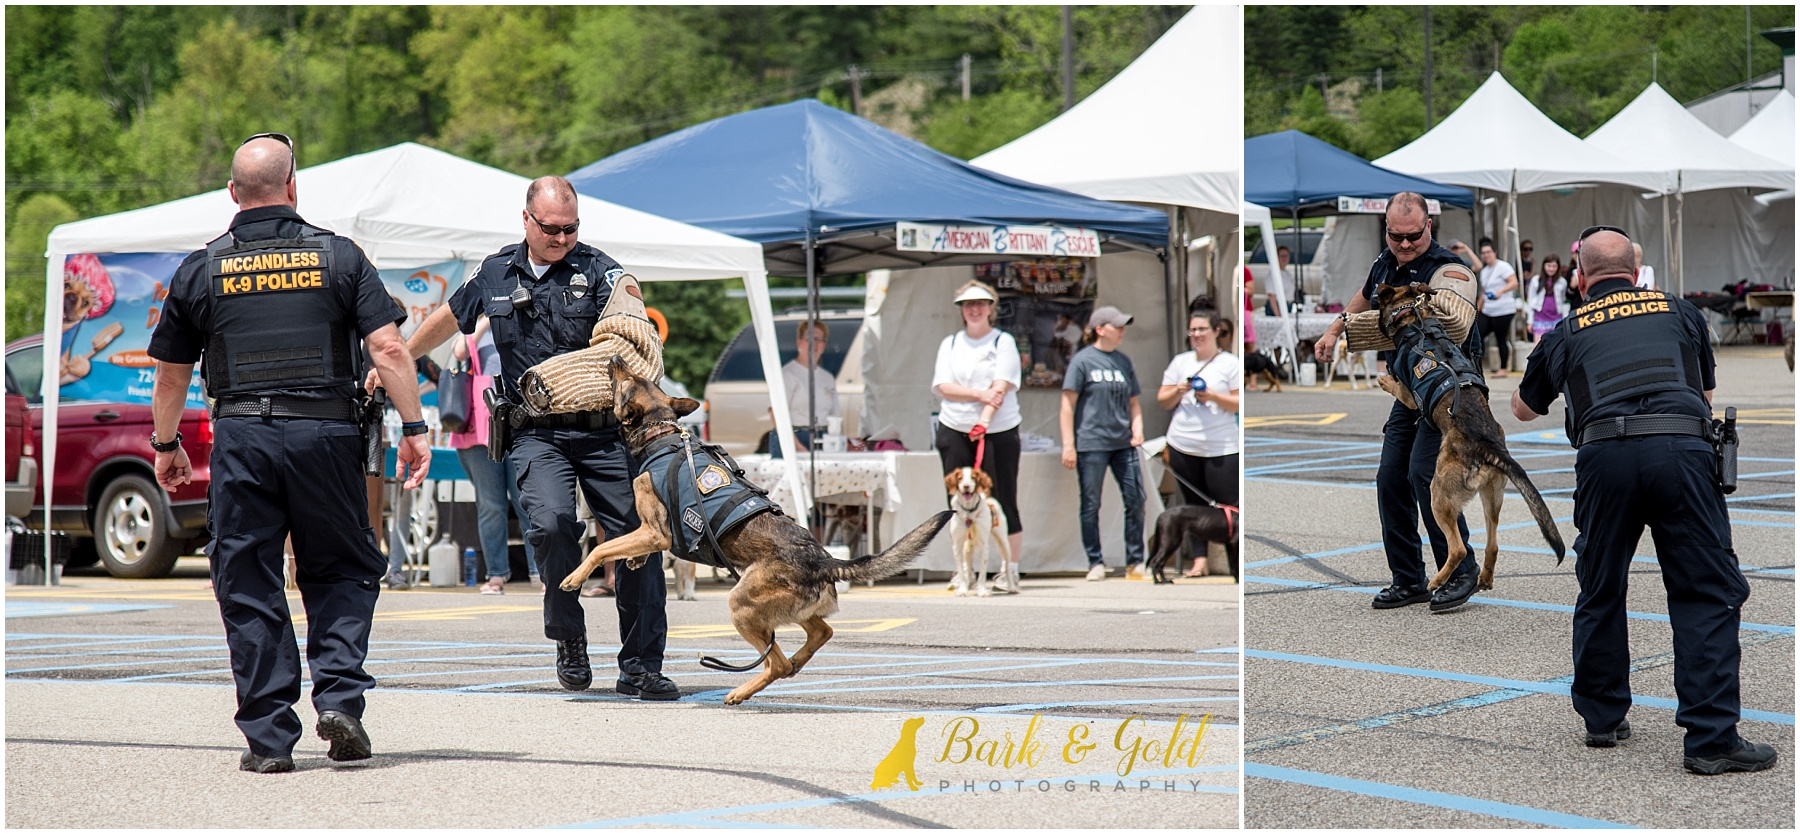 McCandless Police k9 officer performing a bite during Healthy Pet Day 2018